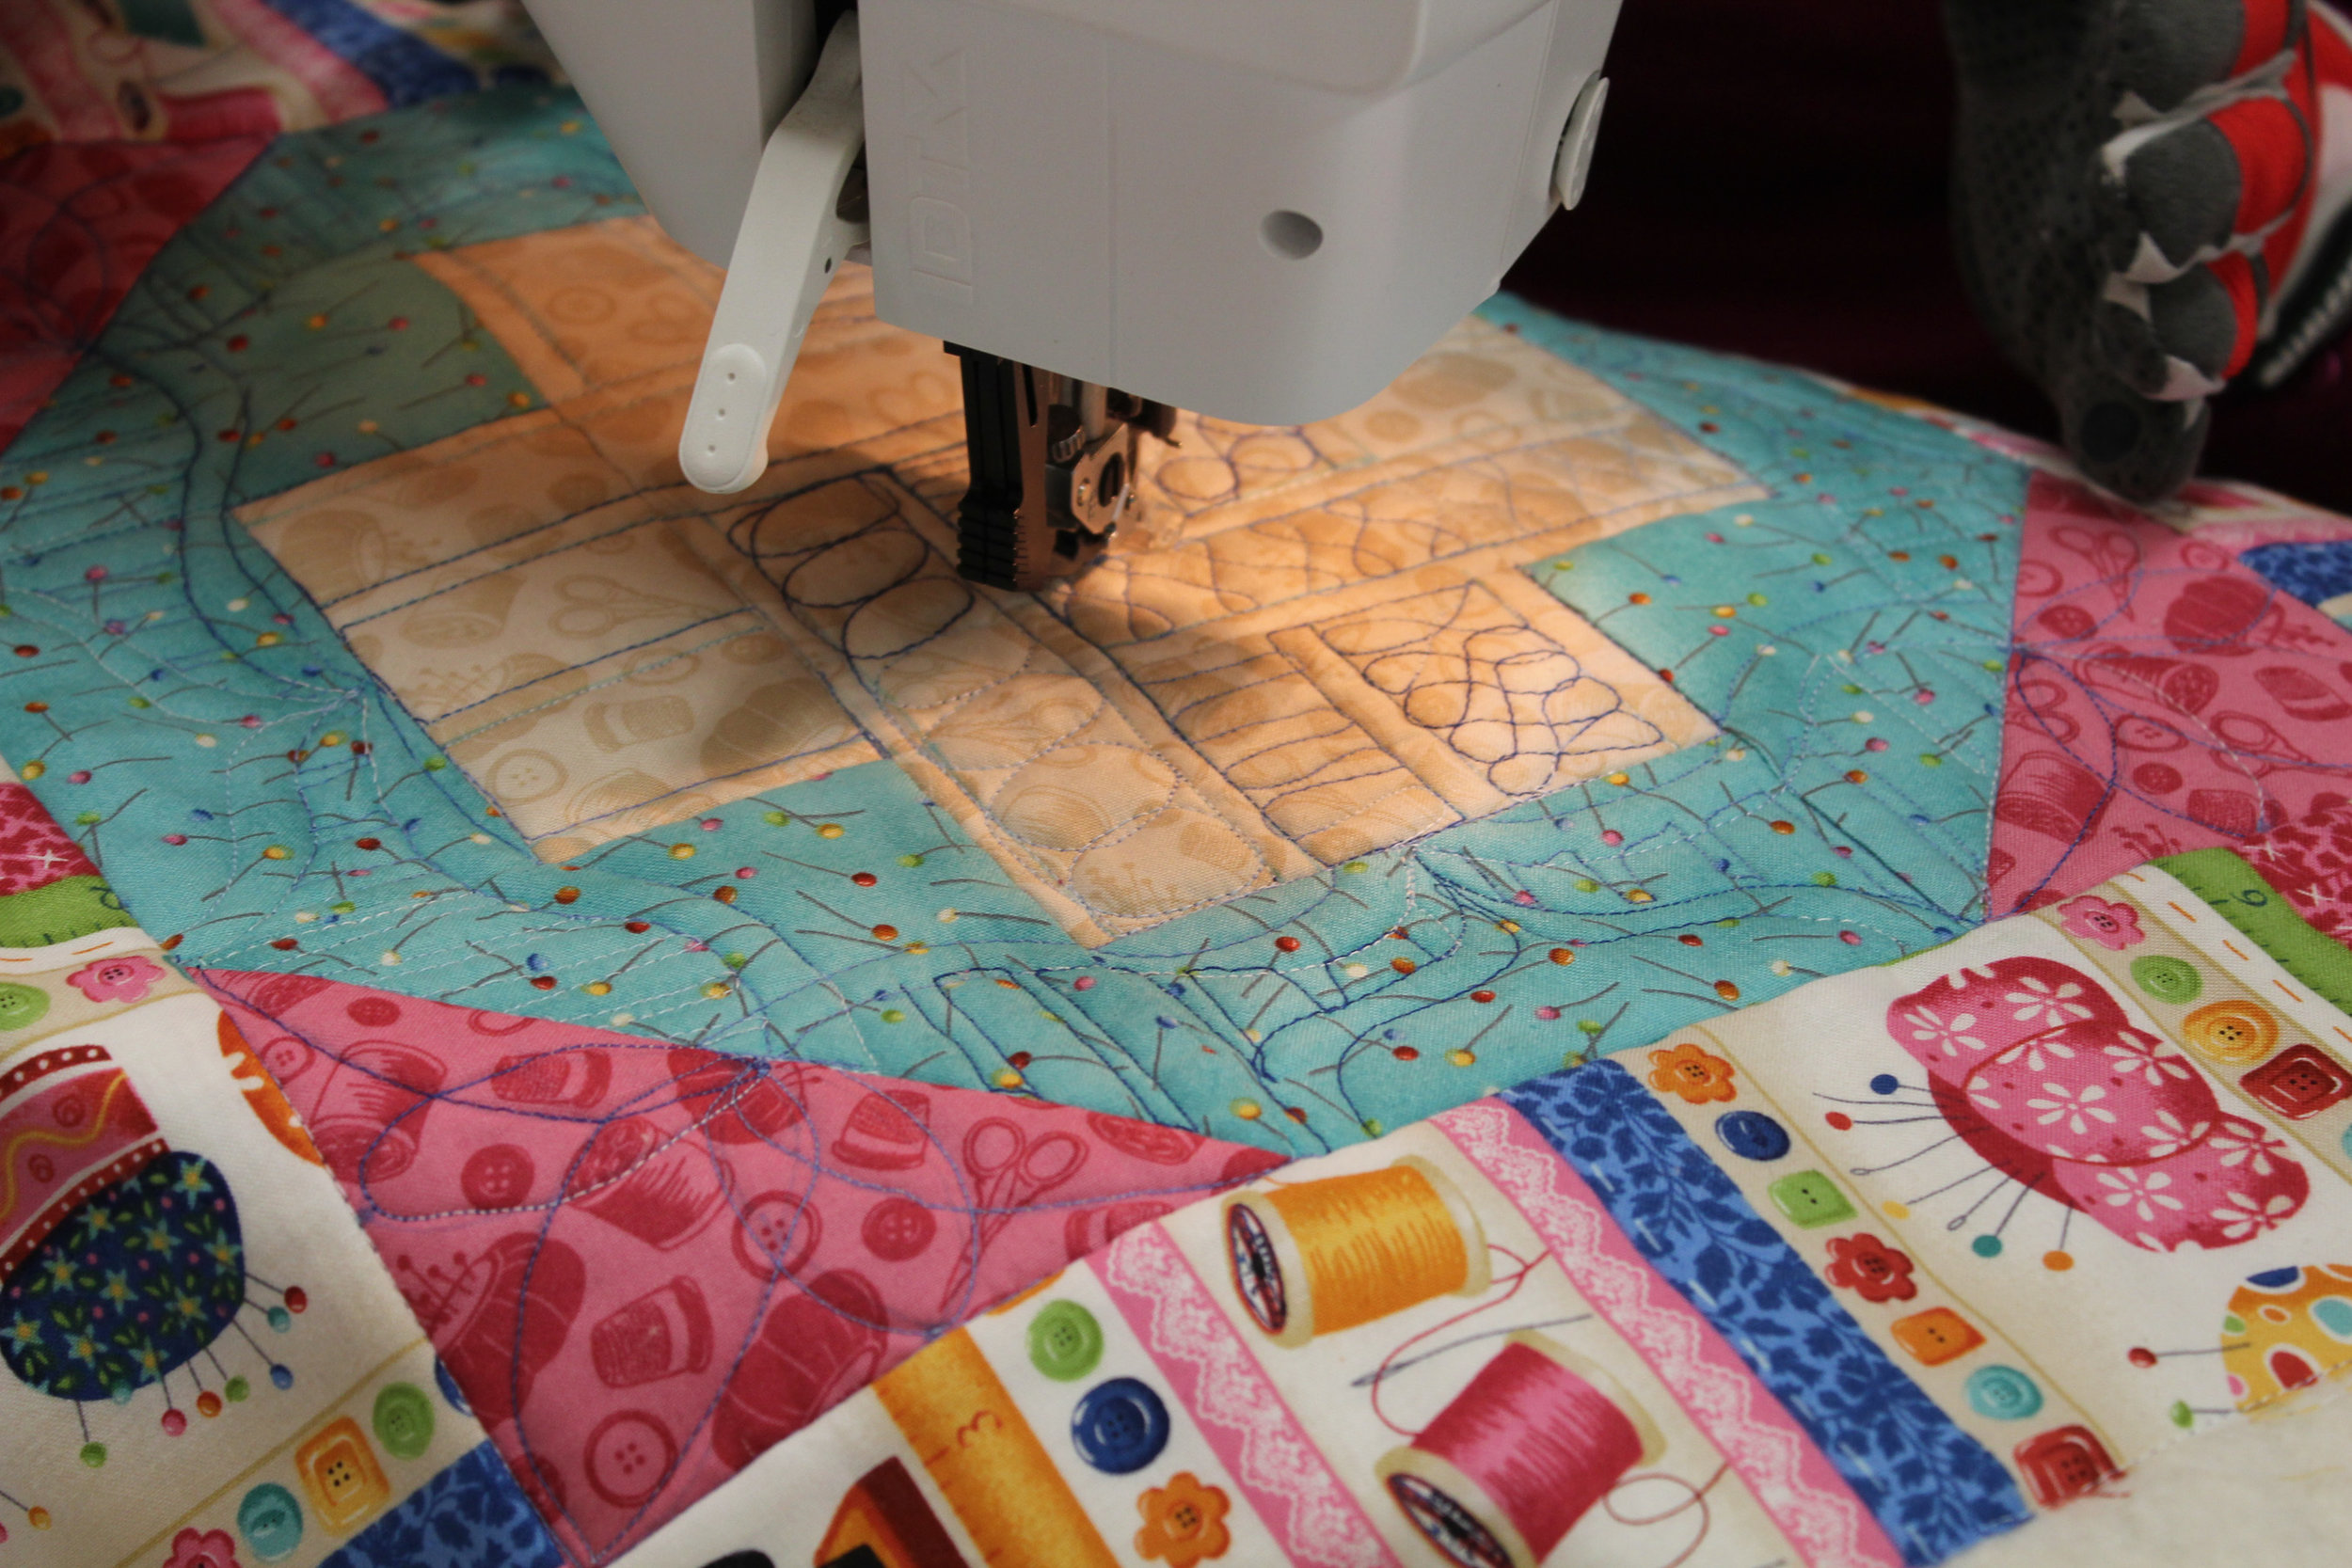 free motion quilting workshop with tomomi mcelwee